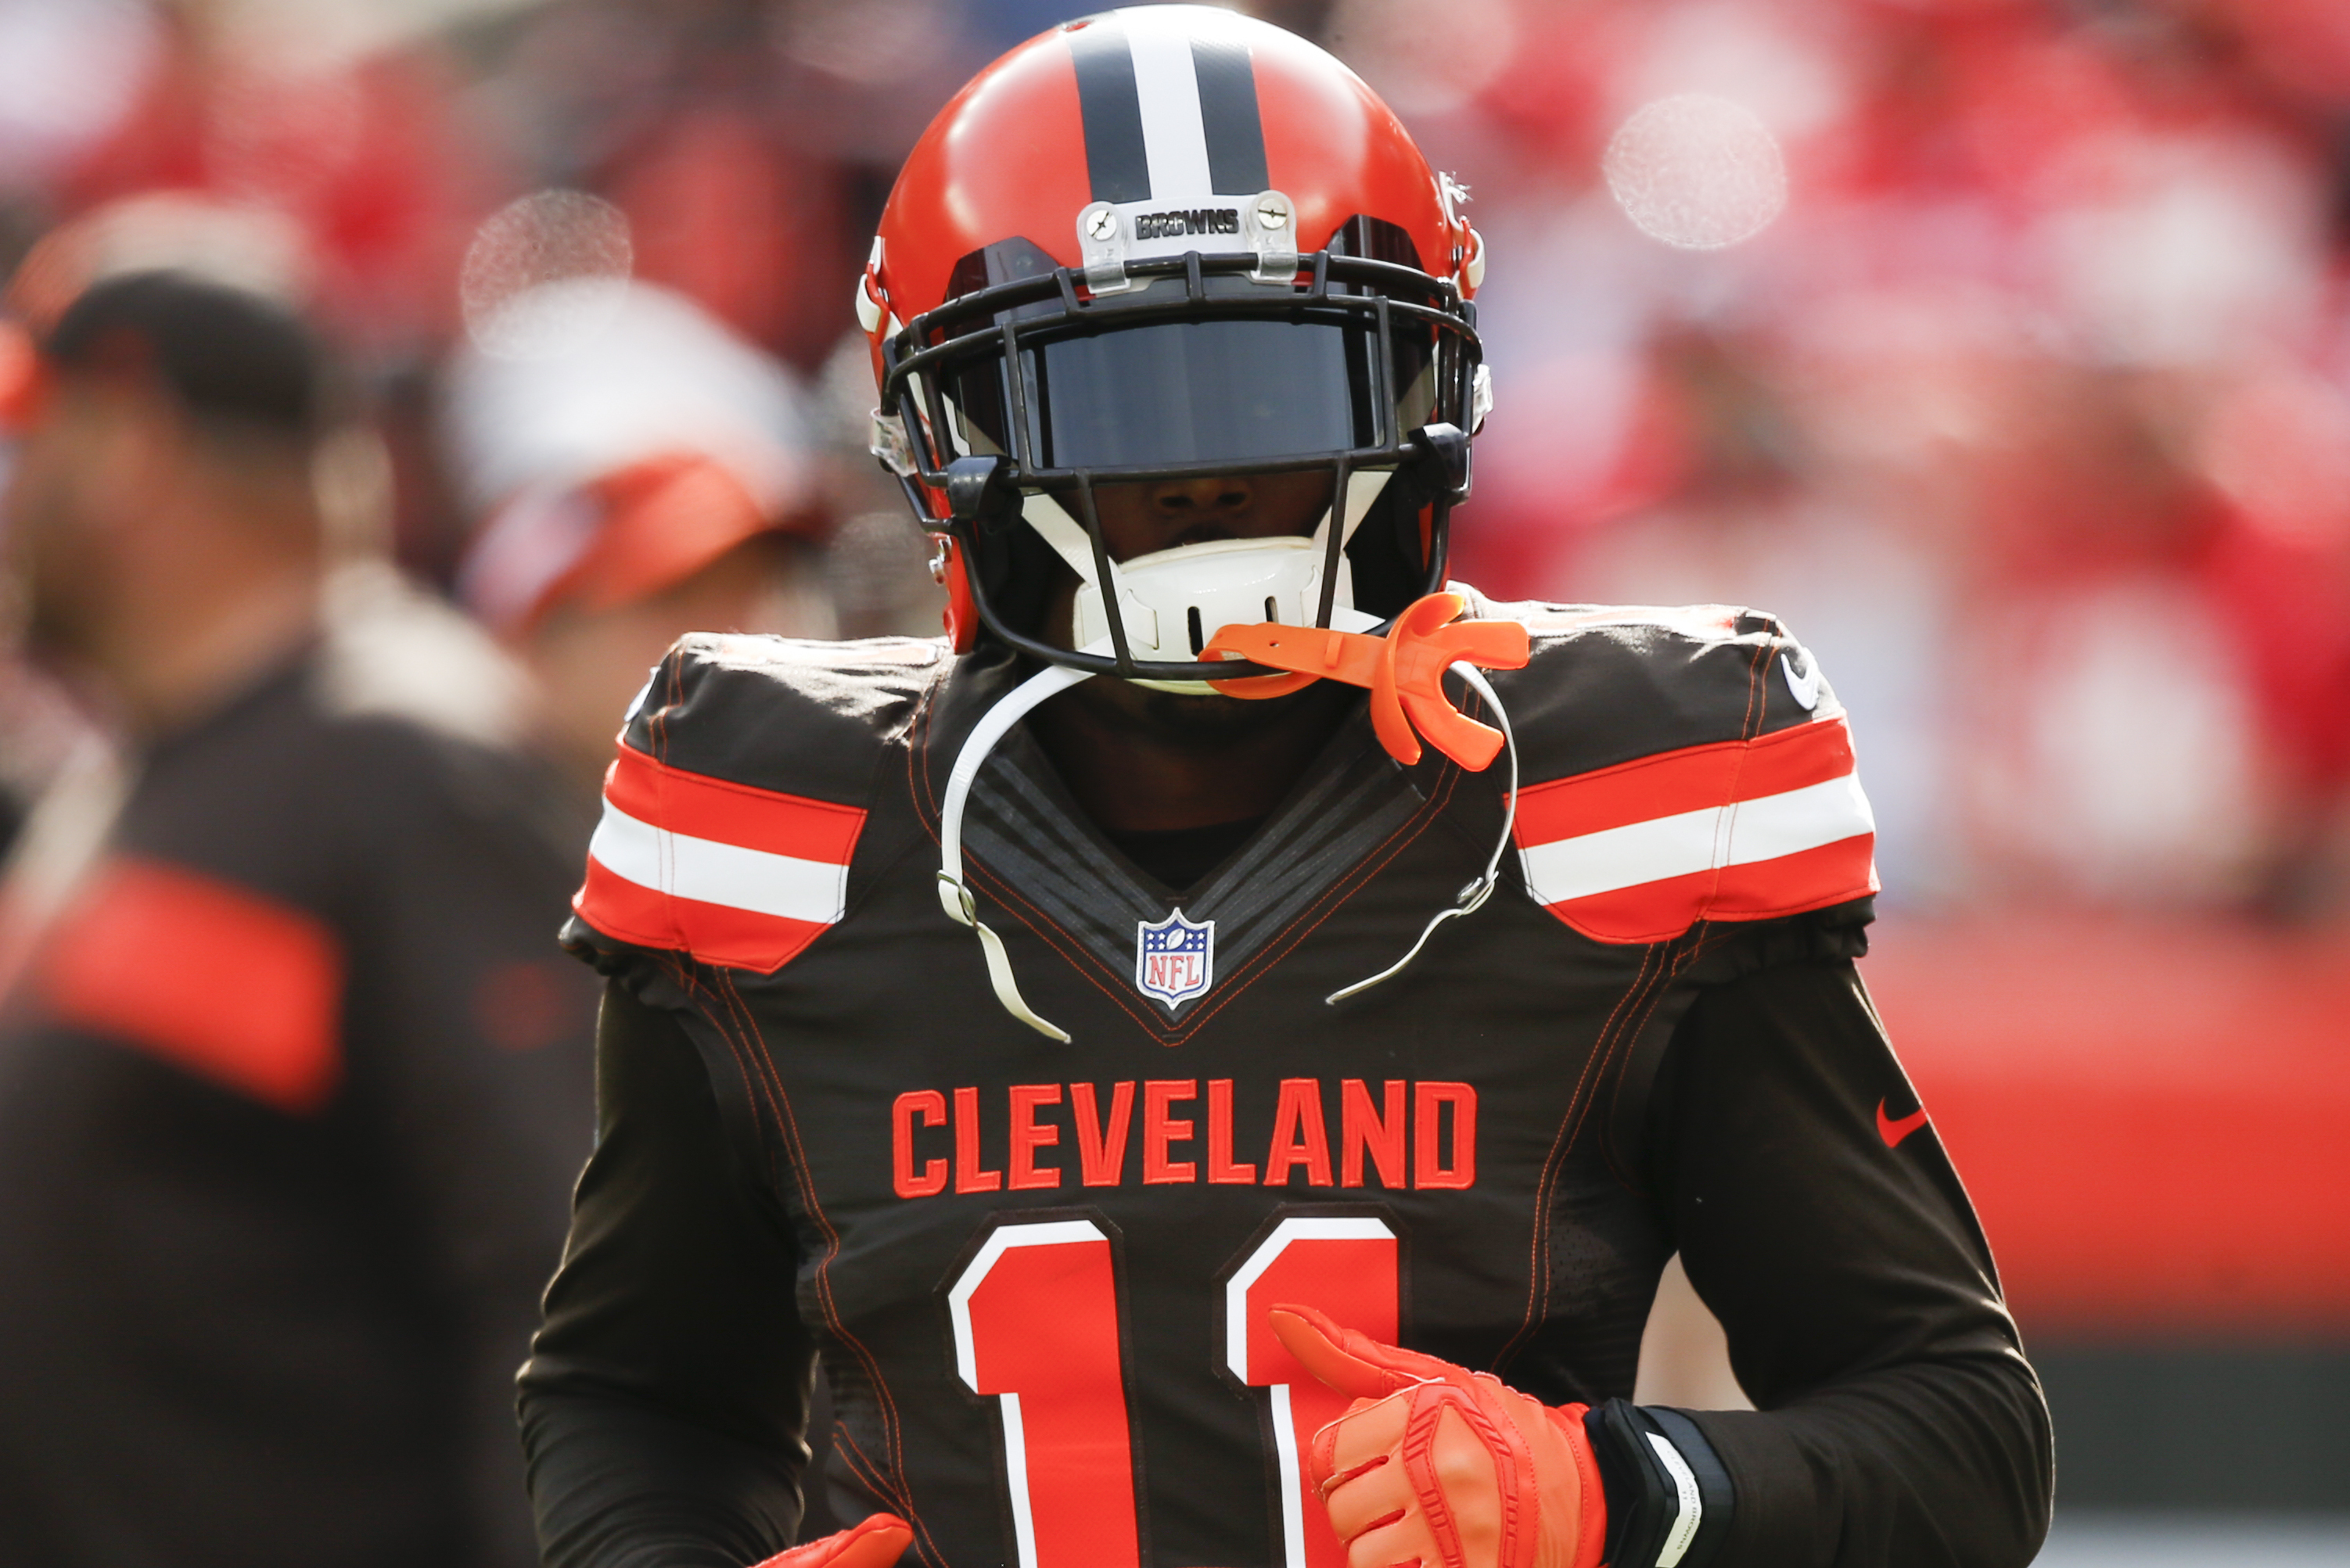 reputable site 28959 52990 Antonio Callaway's Drug Possession Charge from 2018 Arrest ...